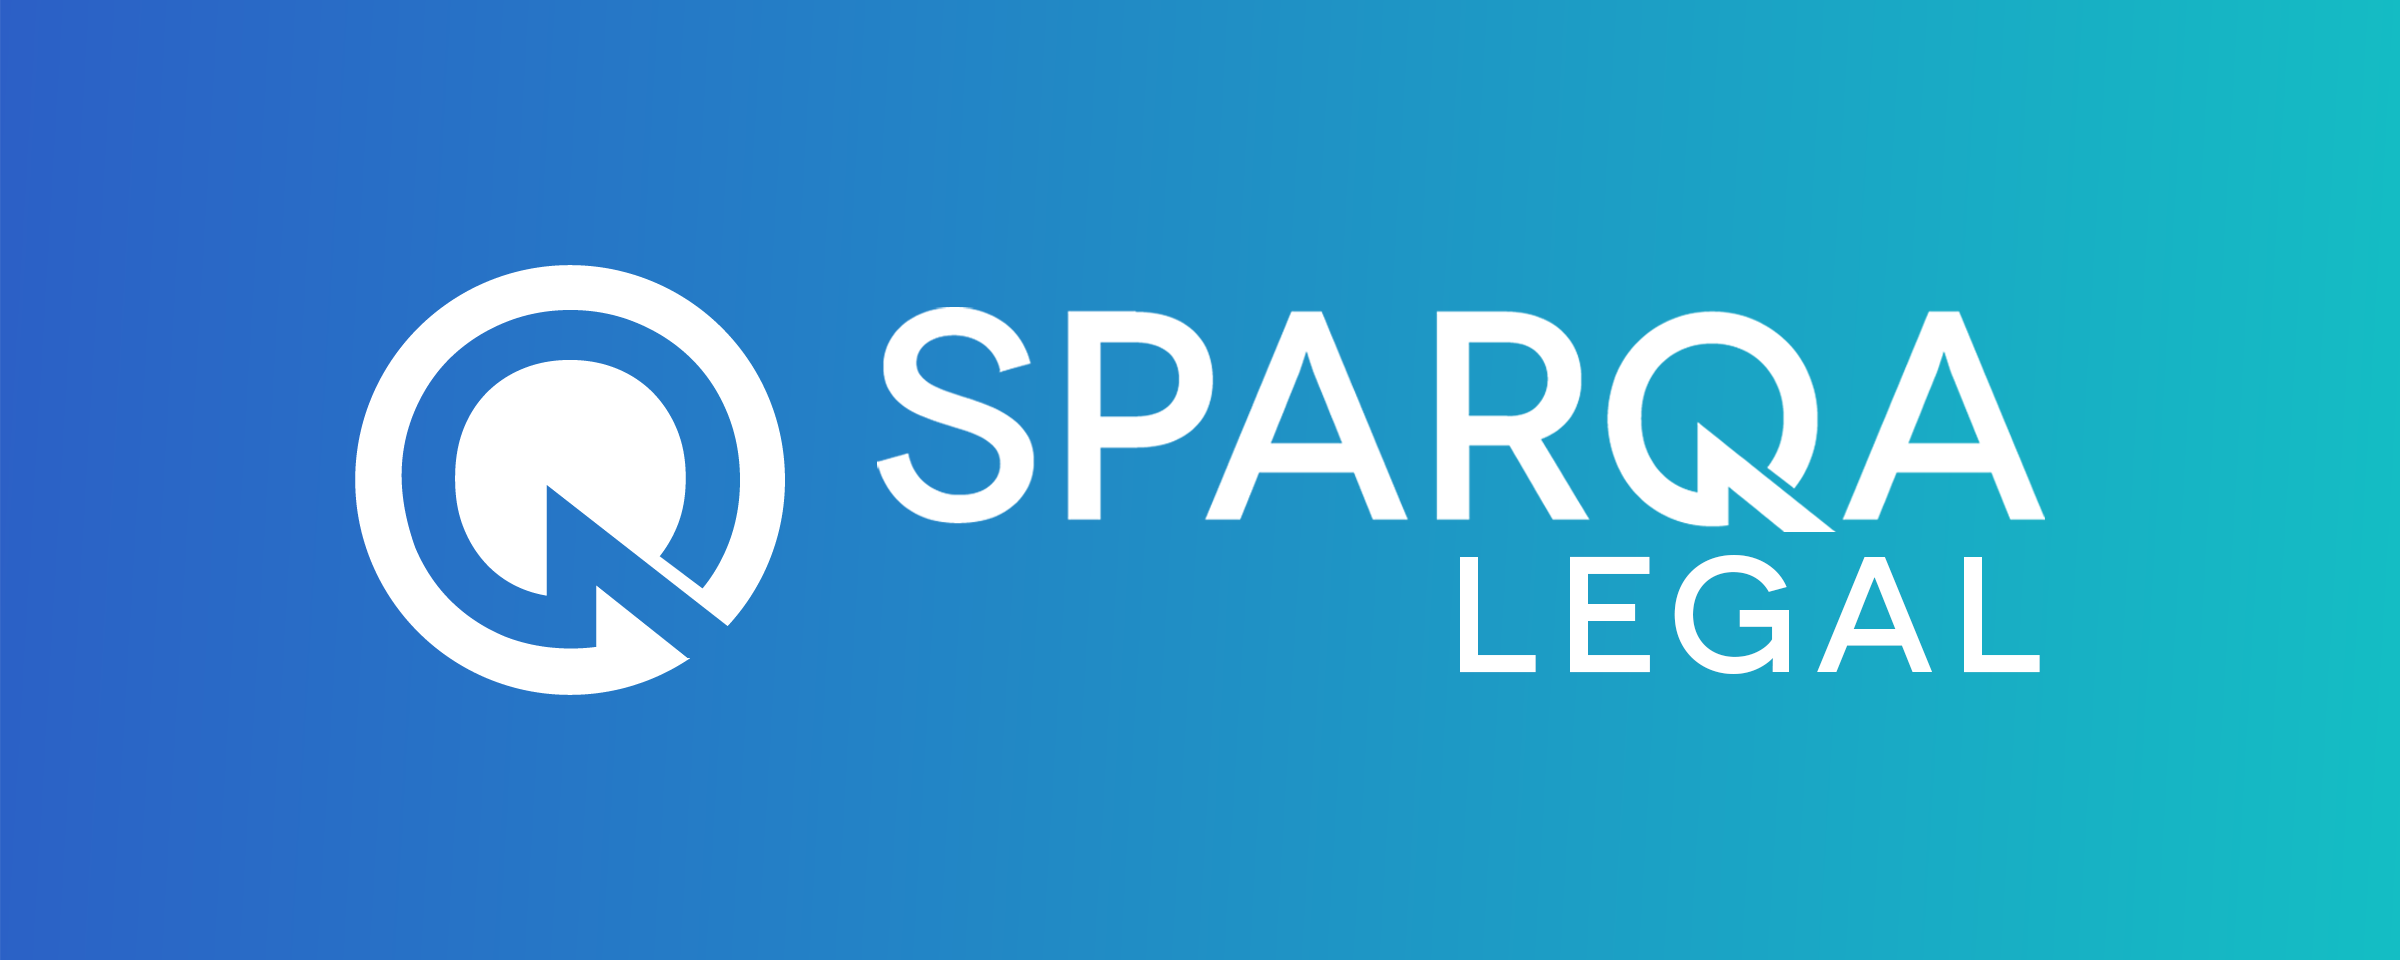 Sparqa Legal Logo